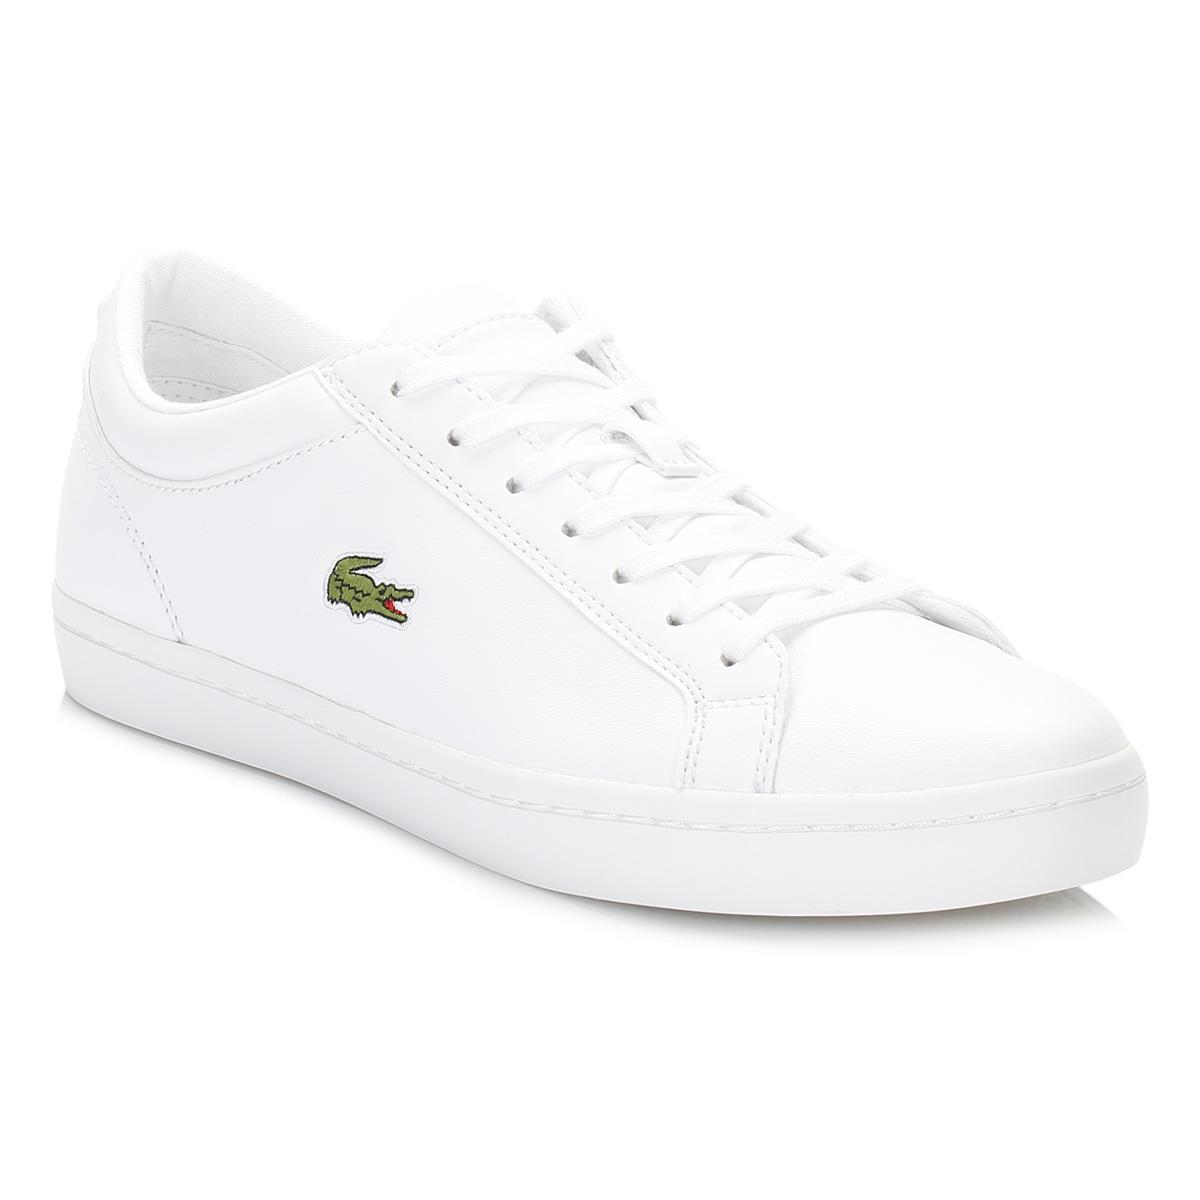 Graduate Leather White 13 Bl1 Save Lacoste In Trainers 2YI9WEHD